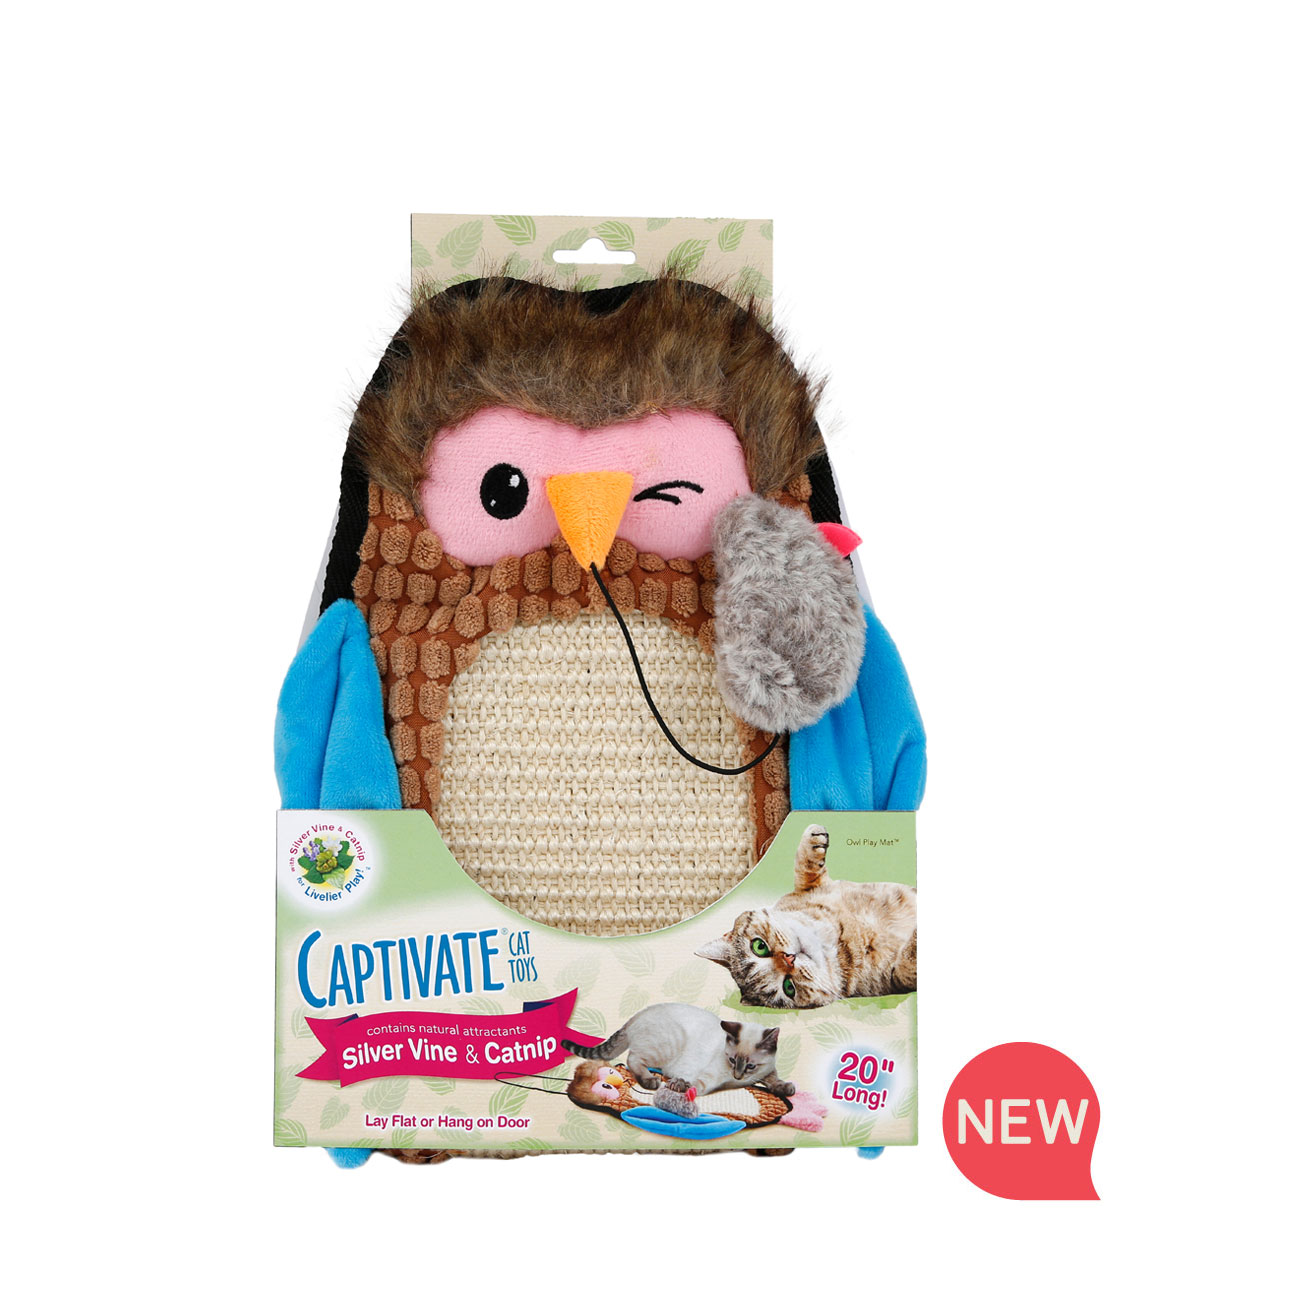 hartz captivate cat toys. owl play mat with silver vine and catnip. Hartz SKU#3270011256